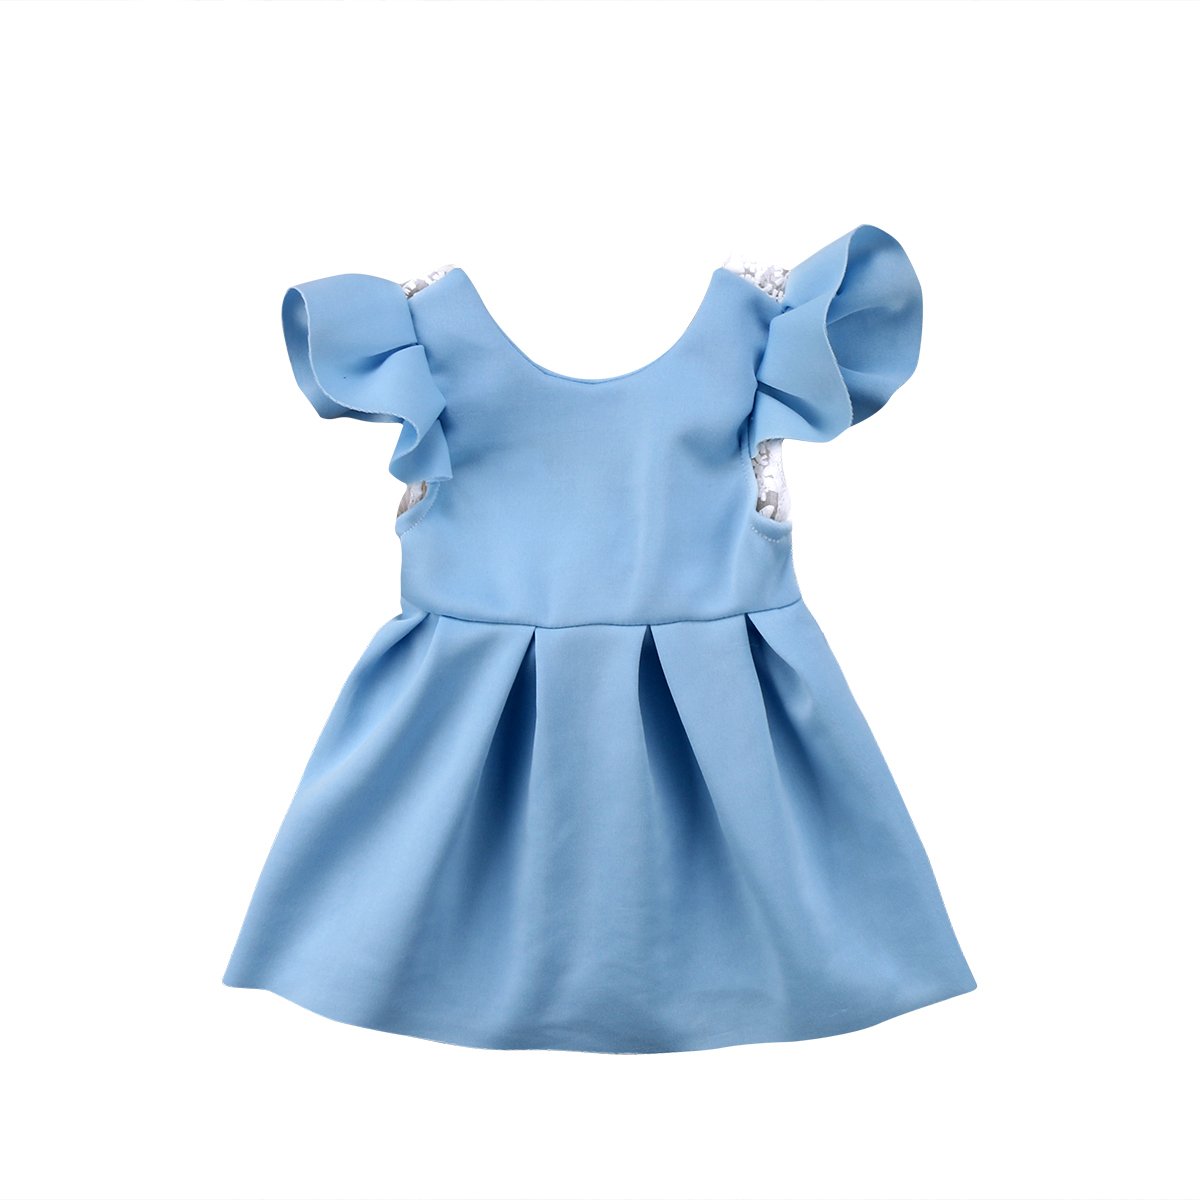 a1106ea6f403 2018 New Baby Girls Toddler Princess Bow Dresses Kid Ball Gown Party Bowknot  Petal Blue Pink Cute Sweet Dress Sundress 0-3T